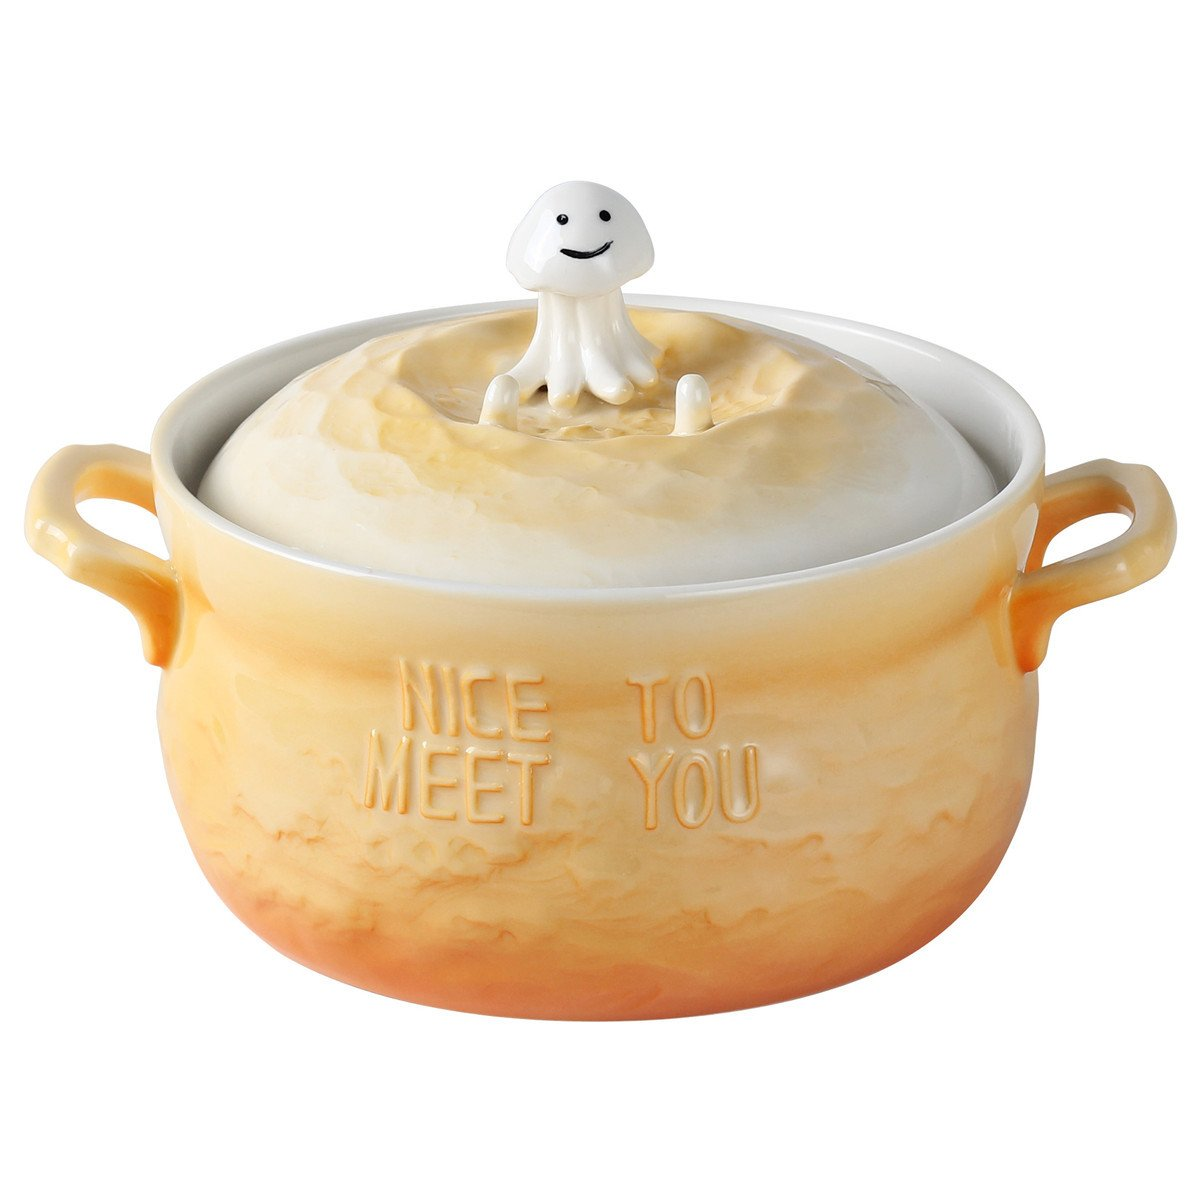 UPSTYLE Microwave Oven Ceramic Soup Bowls 3D Cute Ocean Animal Orange Jellyfish Instant Noodle Bowl Cereal Serving Pot/Casserole for Salad Fruit with Lid and handle,29oz (Orange Jellyfish)